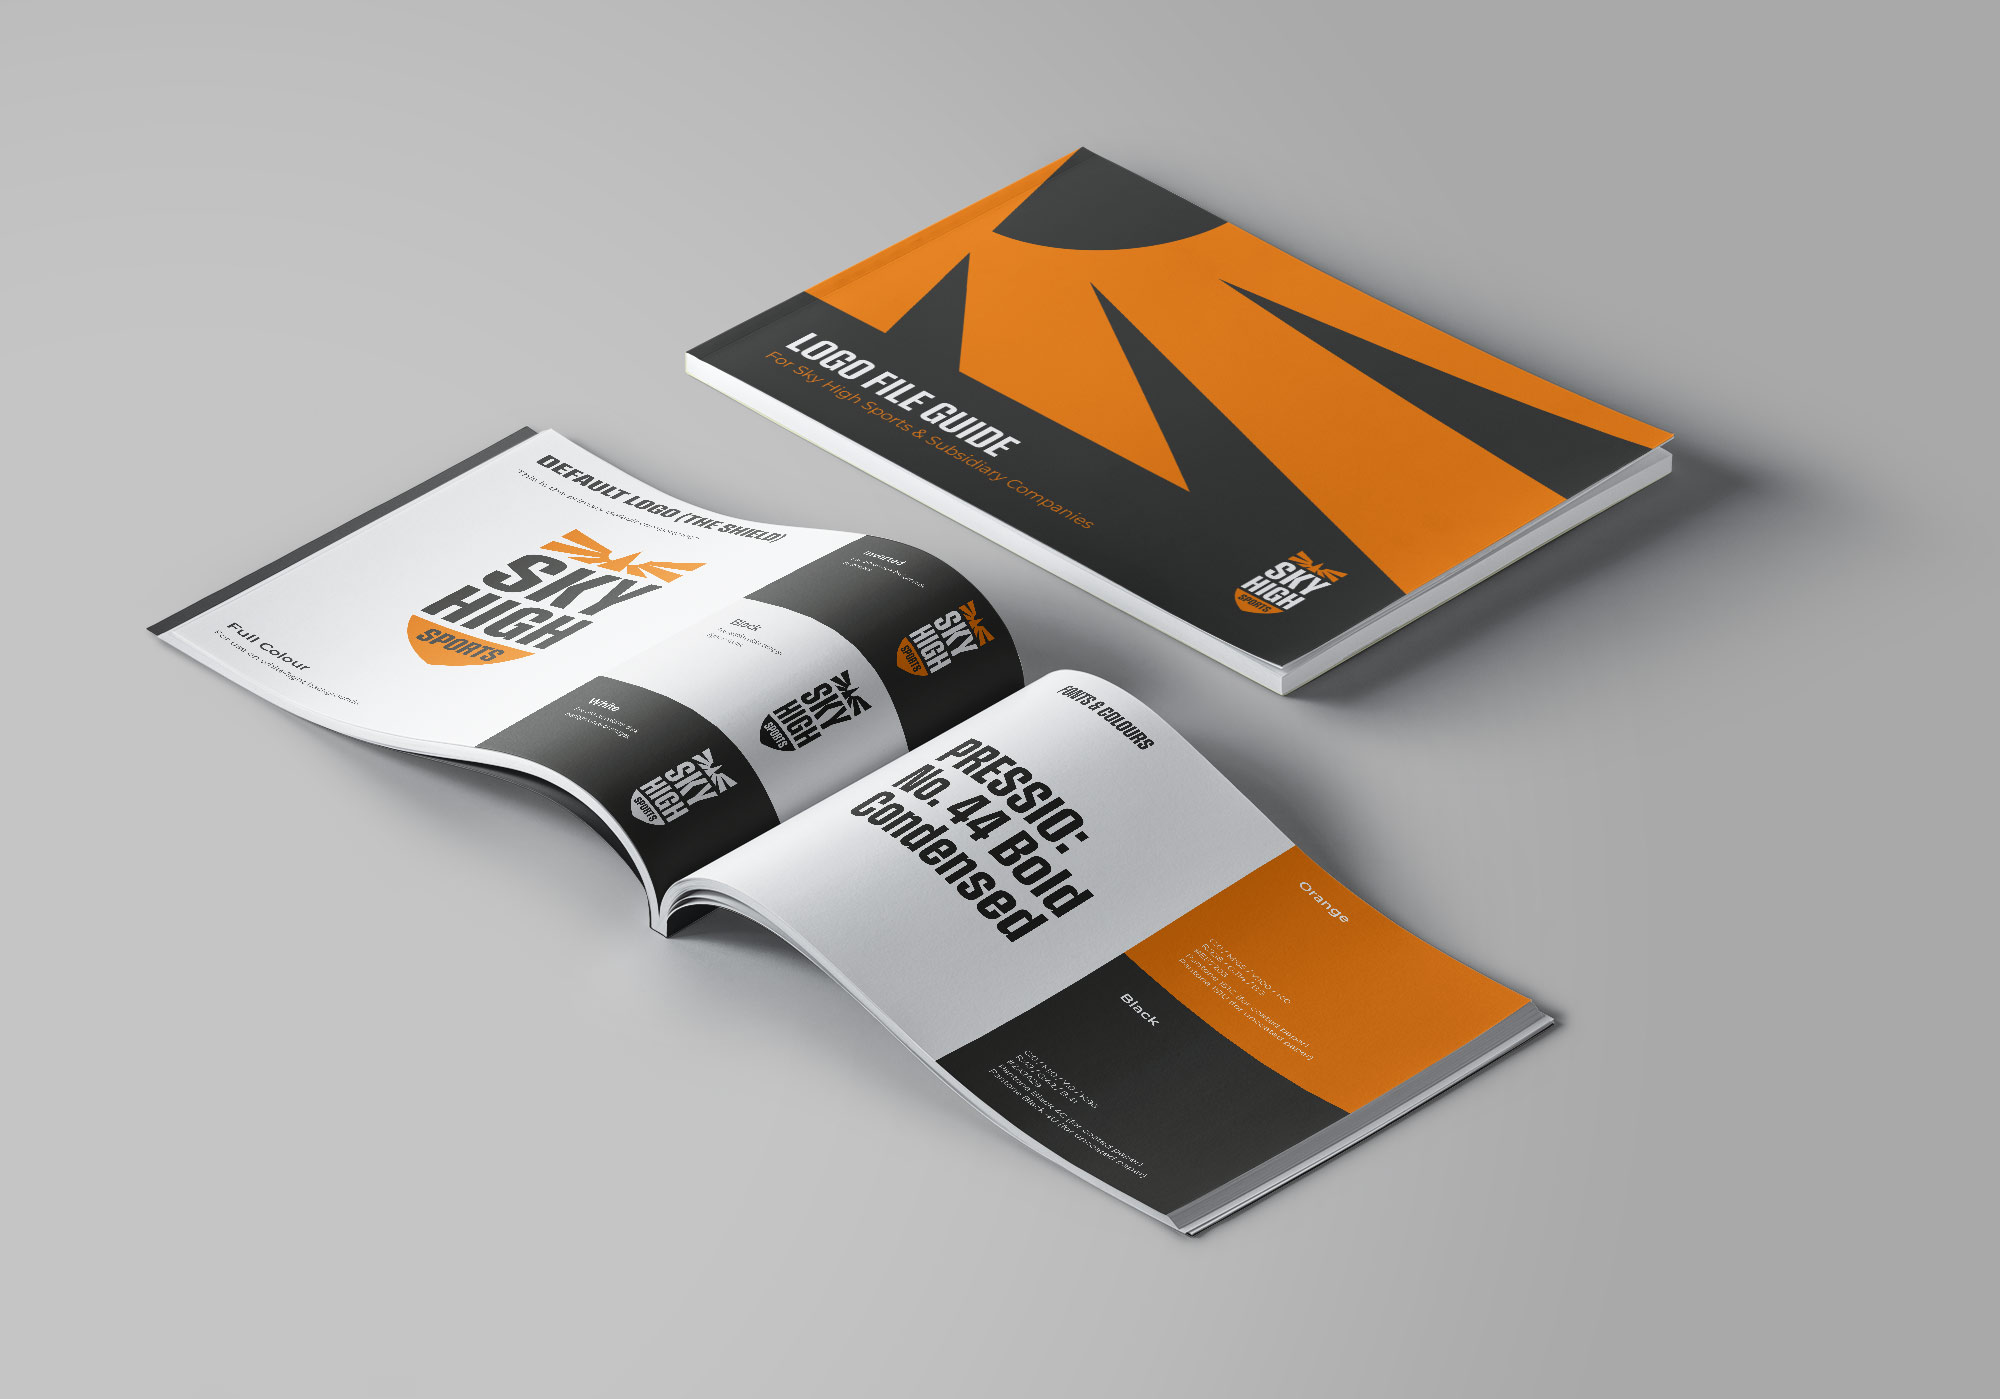 Sky High Sports Logo Design File Guide by Ian Paget